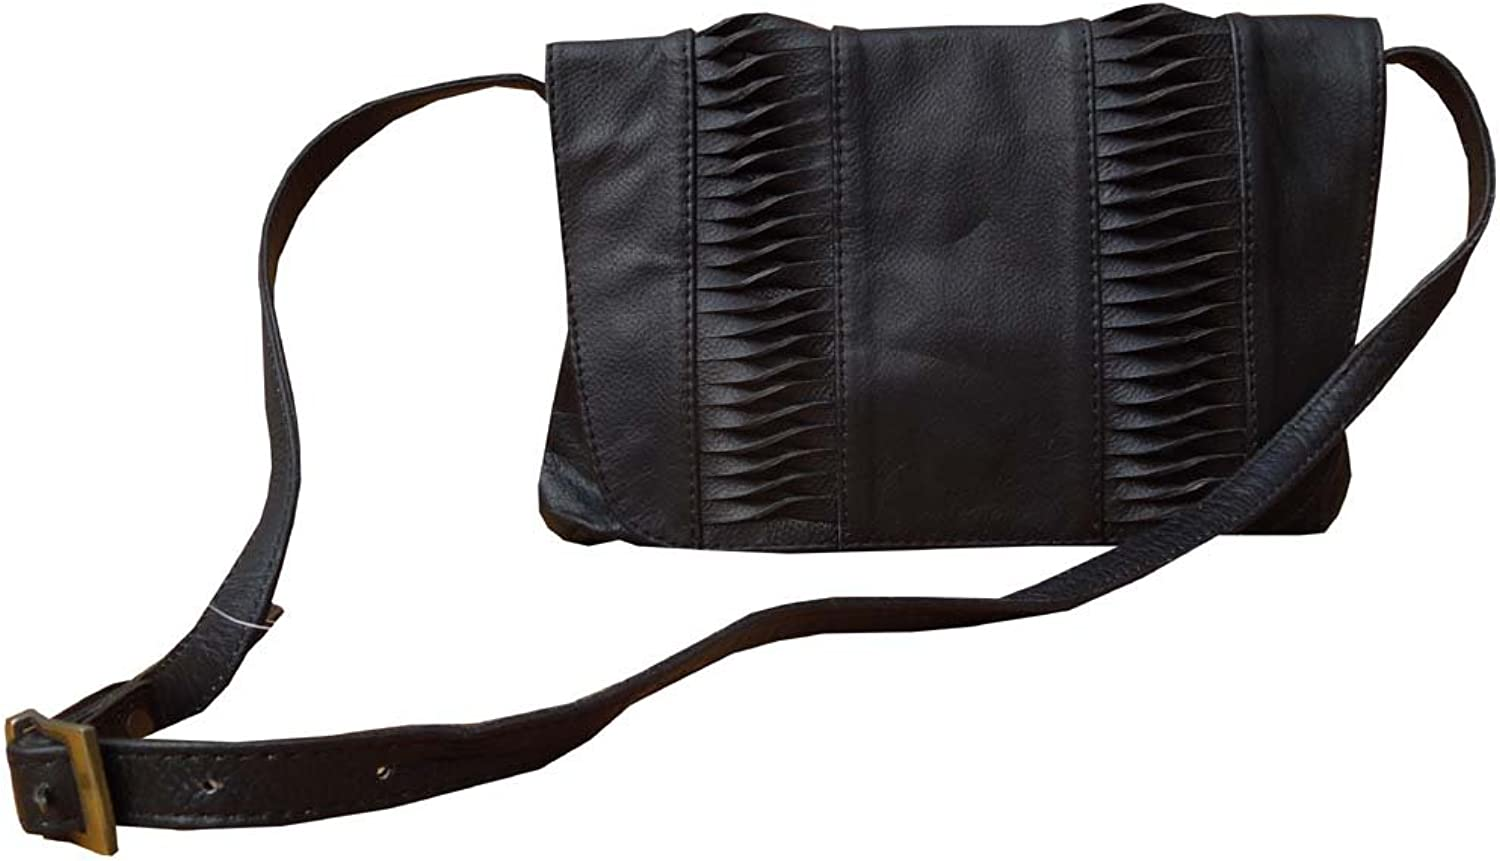 Spice Art Women's Black Cow Leather Cross Body Bag